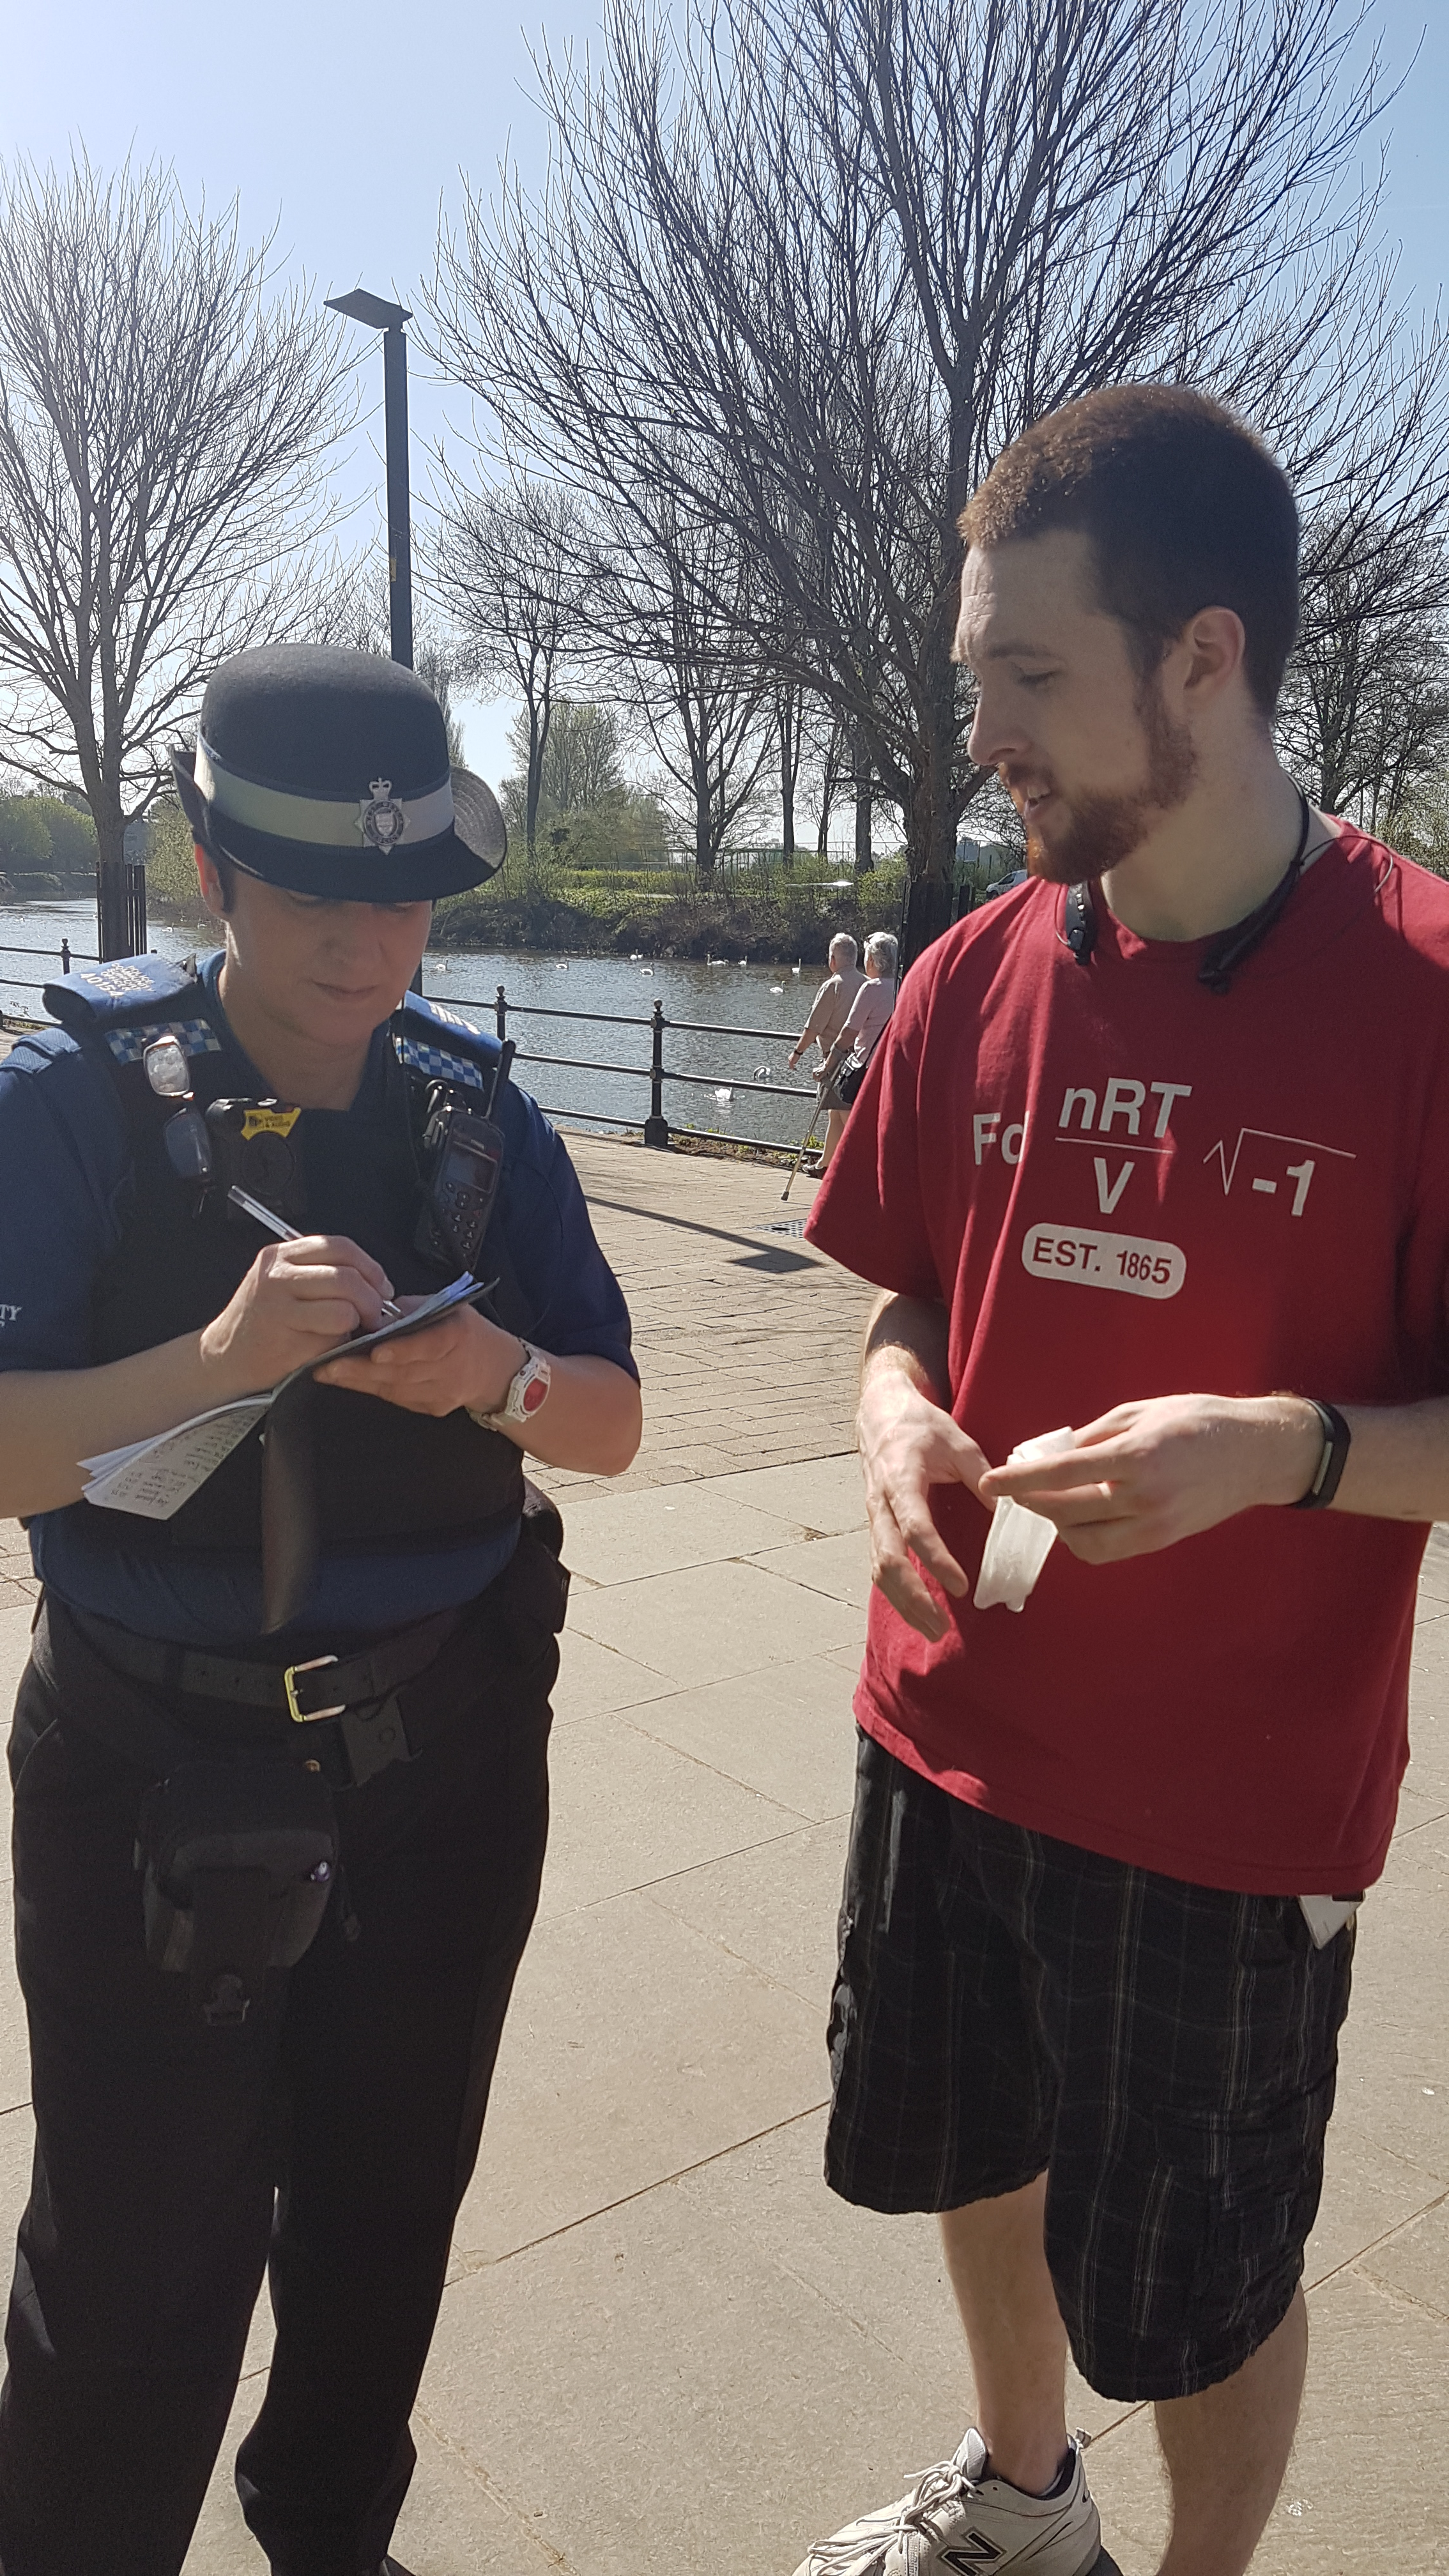 Handing in an unsigned credit card found on the litterpick